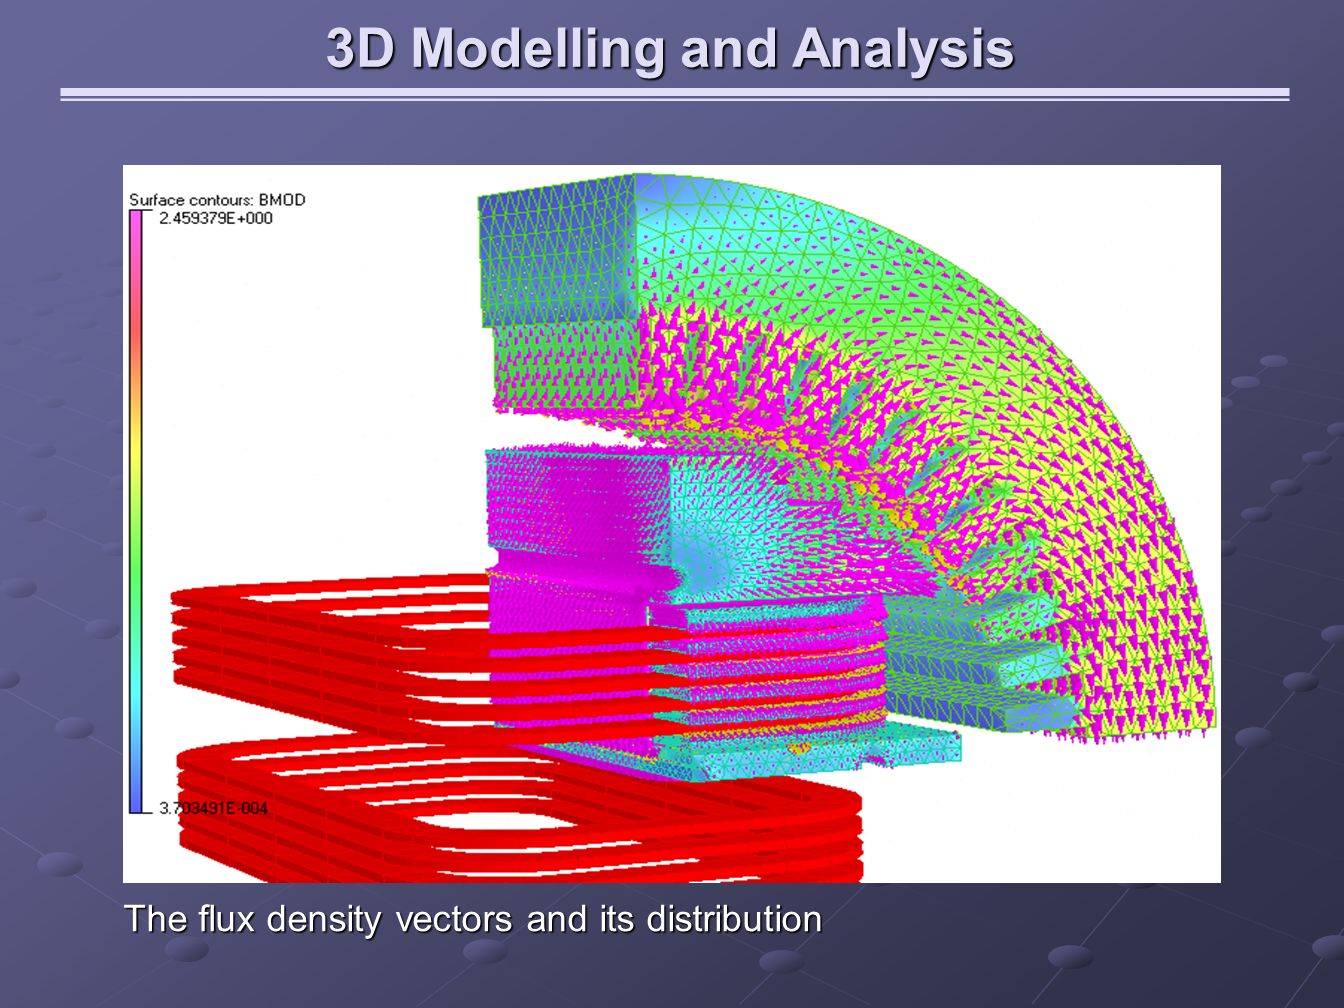 The flux density vectors and its distribution 3D Modelling and Analysis